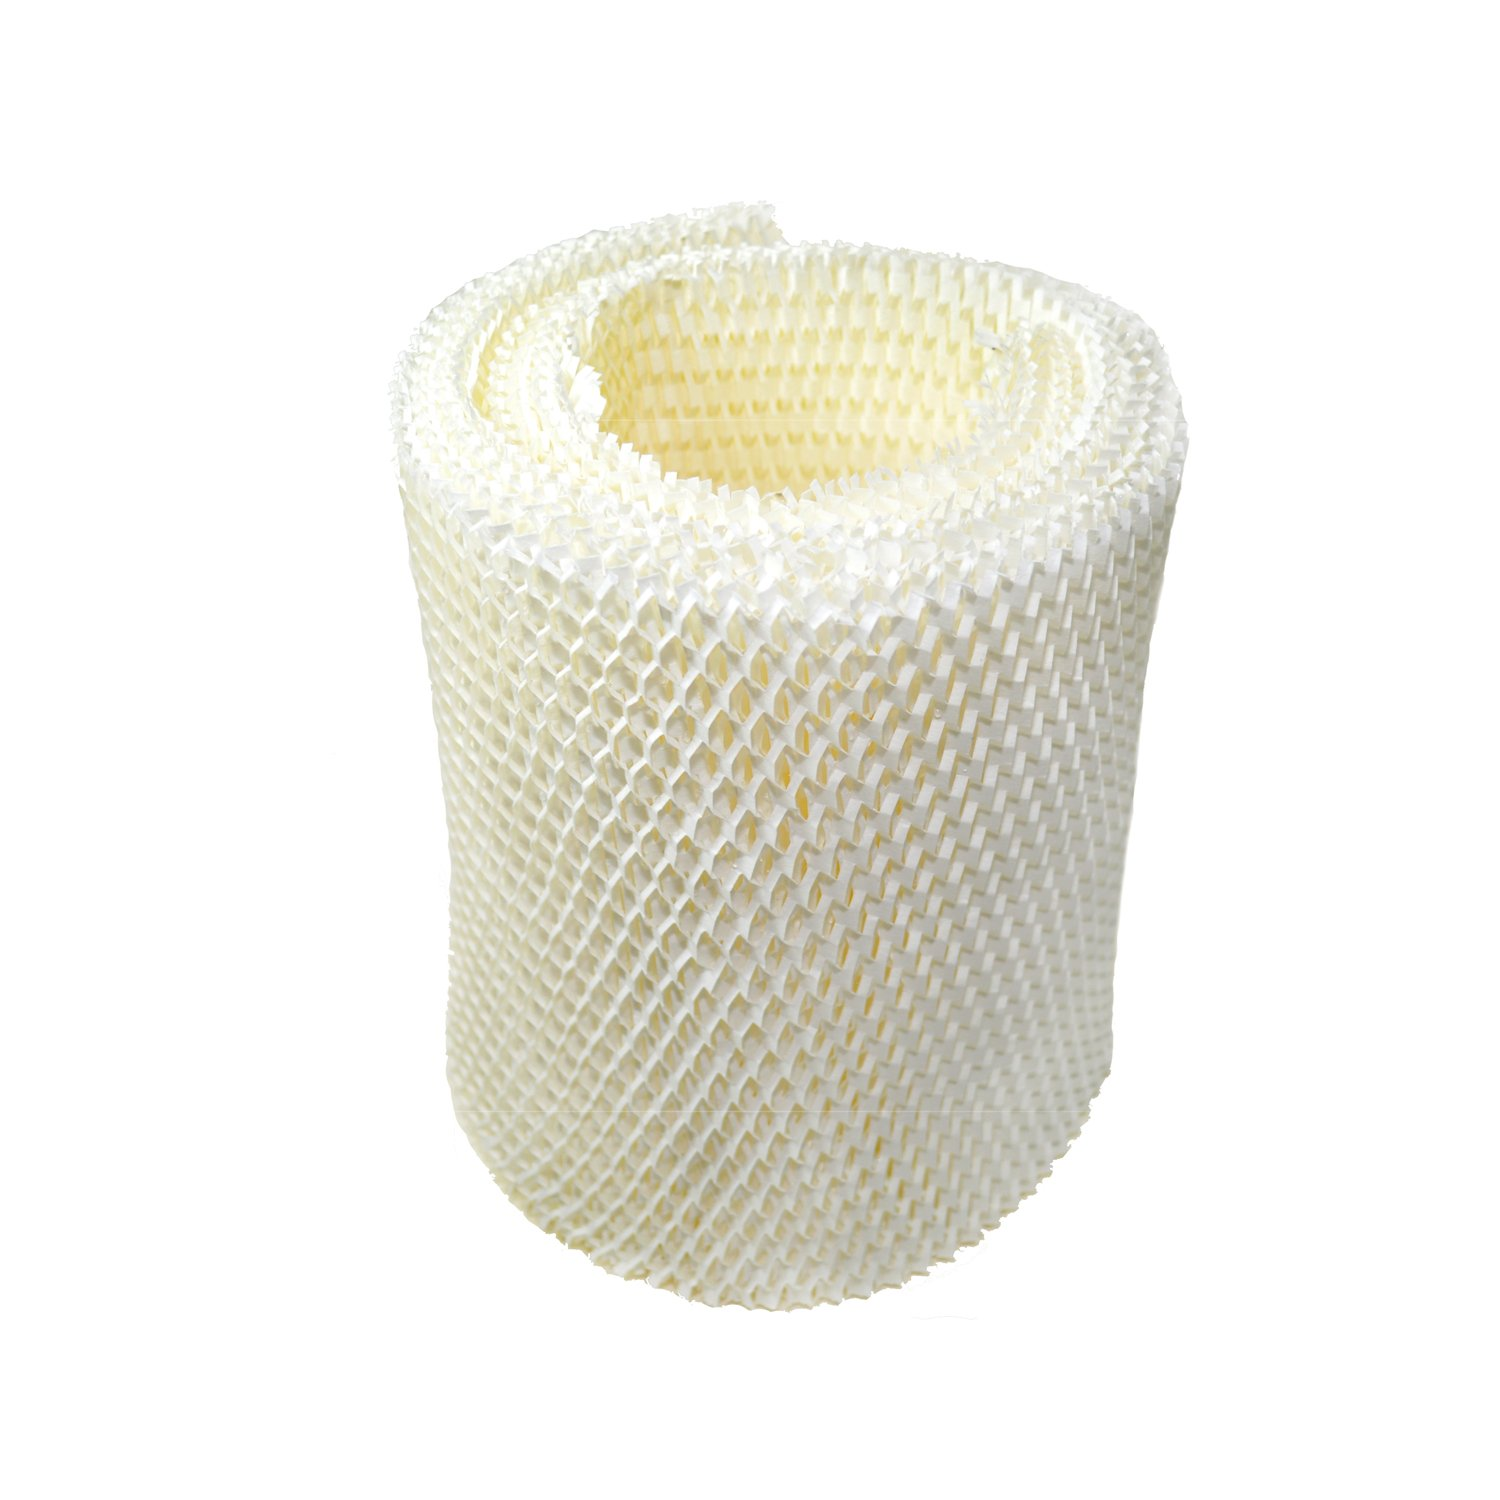 HQRP Humidifier Wick Filter Compatible with Kenmore 14906 EF1 EF-1, Emerson MoistAir MAF1 MAF-1 Replacement, 42-14906 32-14906 by HQRP